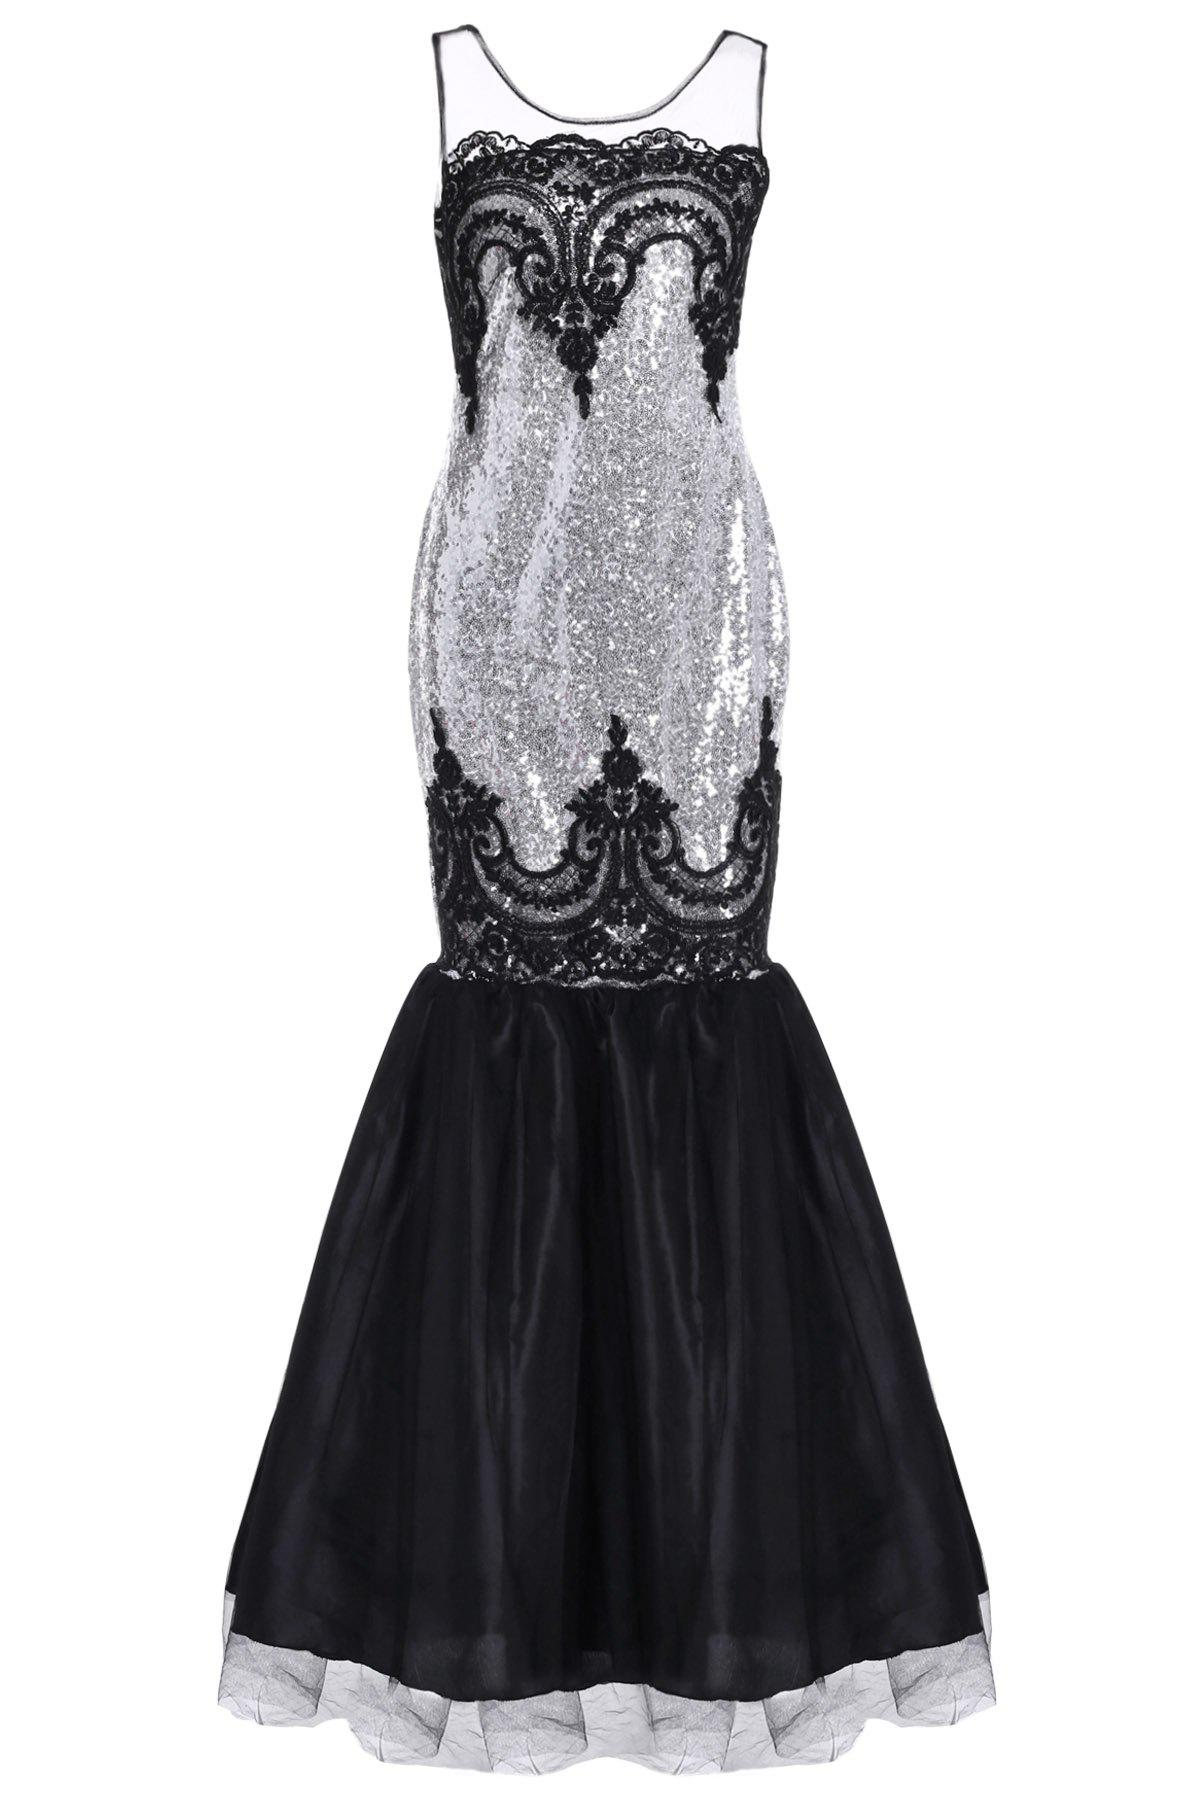 Noble Sleeveless Round Neck Sequined See-Through Women's Fishtail Dress